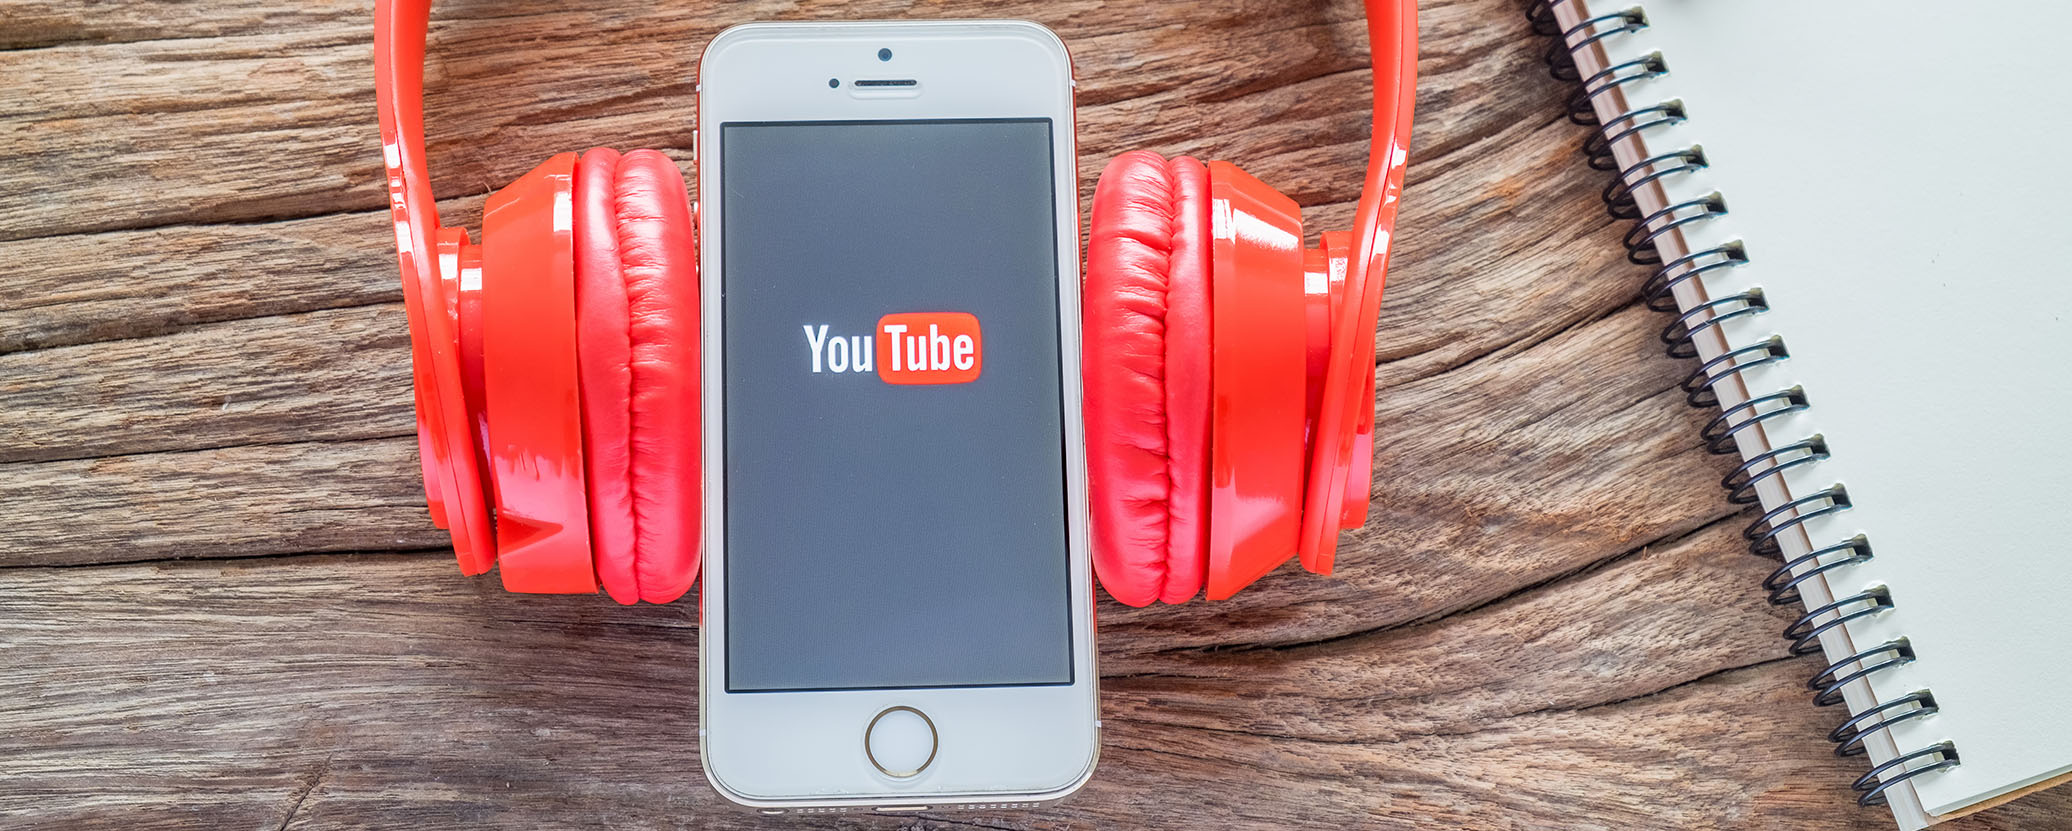 download music on your phone from youtube